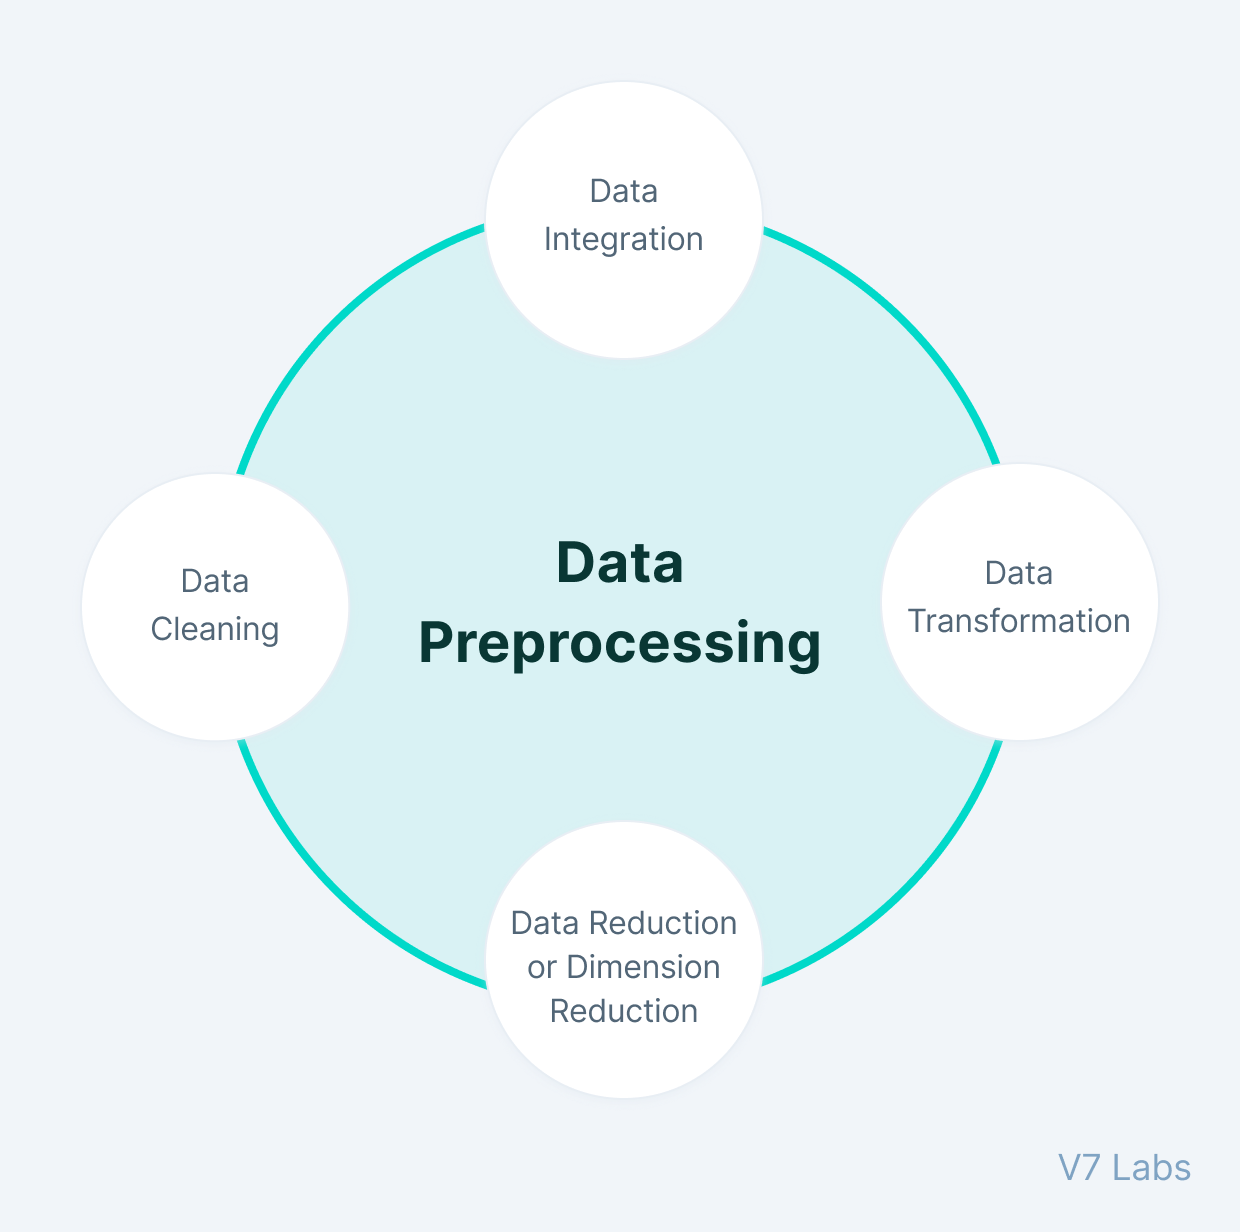 Data Preprocessing stages